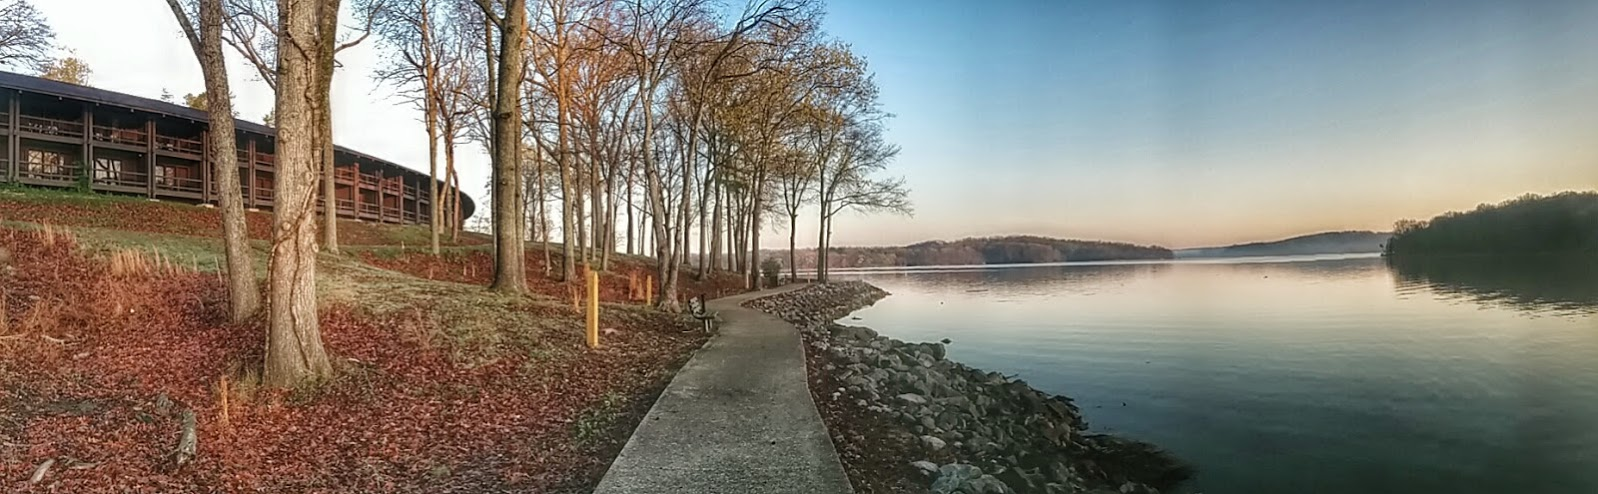 The summit was held at the beautiful Lake Barkley State Resort Park in Cadiz, KY